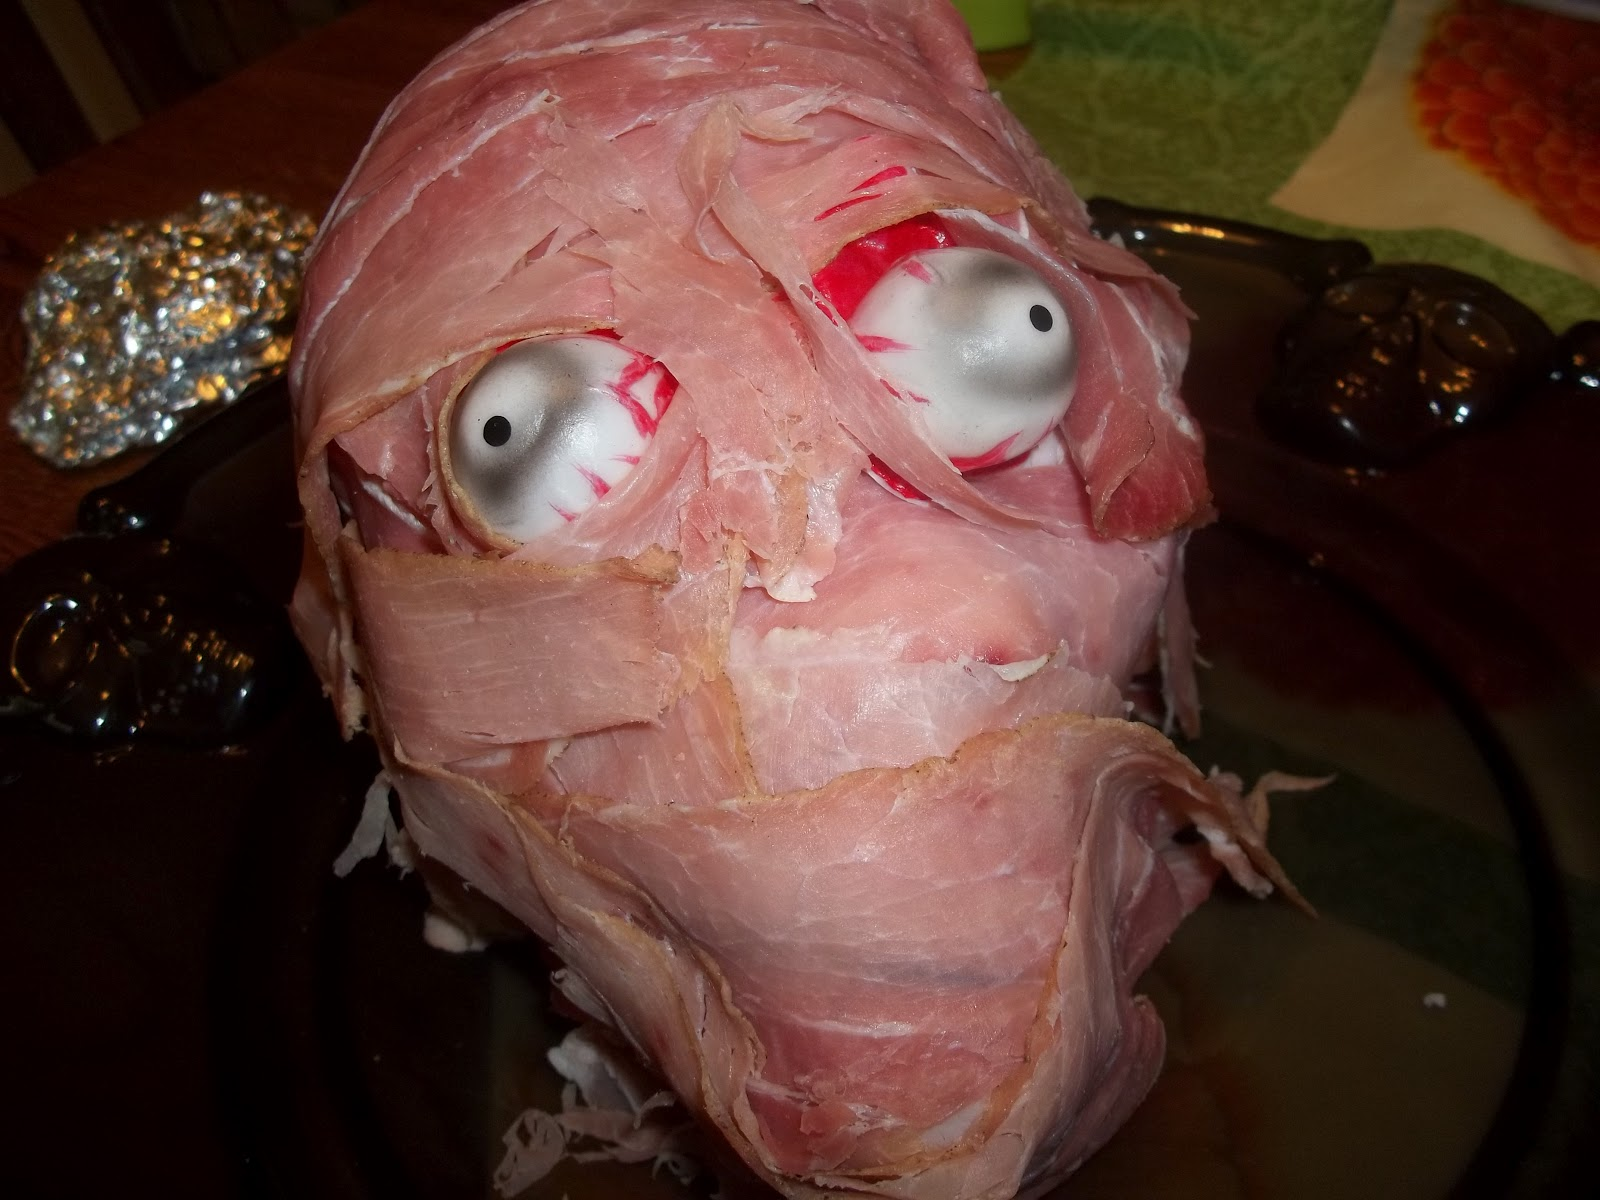 Grossest Picture On The Internet Grossest halloween meat andGrossest Picture In The World